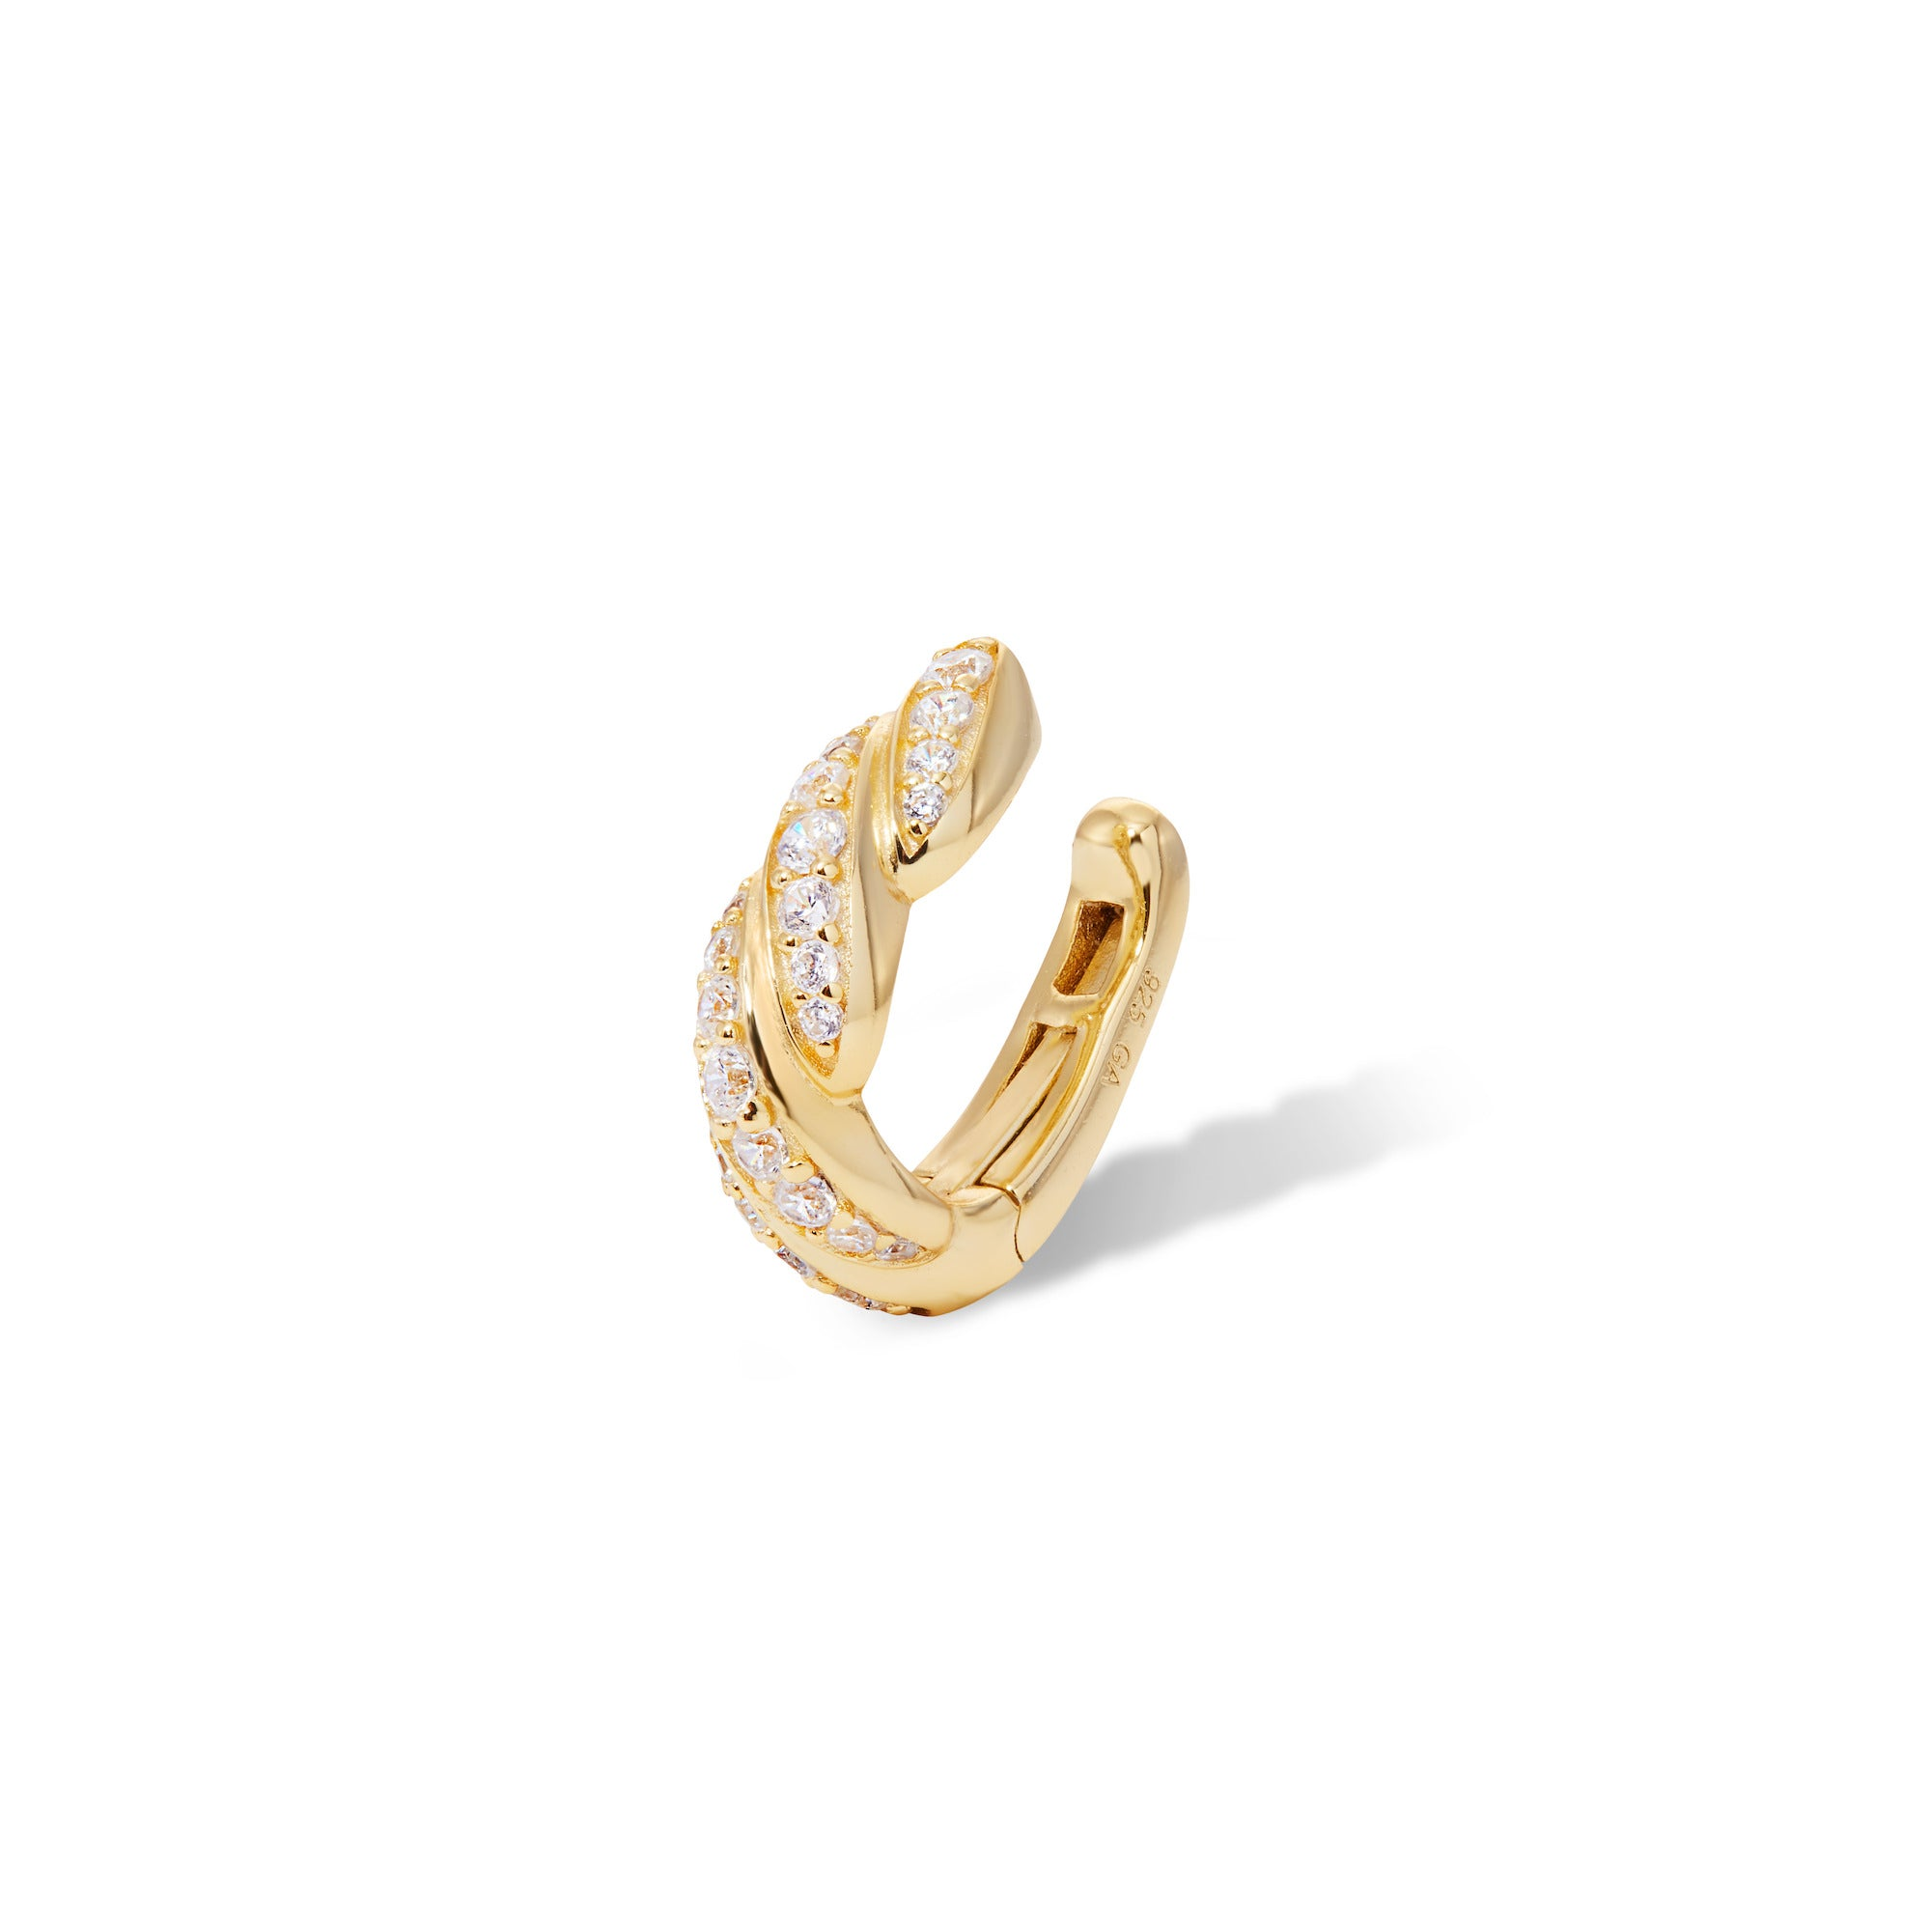 Image of Speira band pave gold vermeil ear cuff